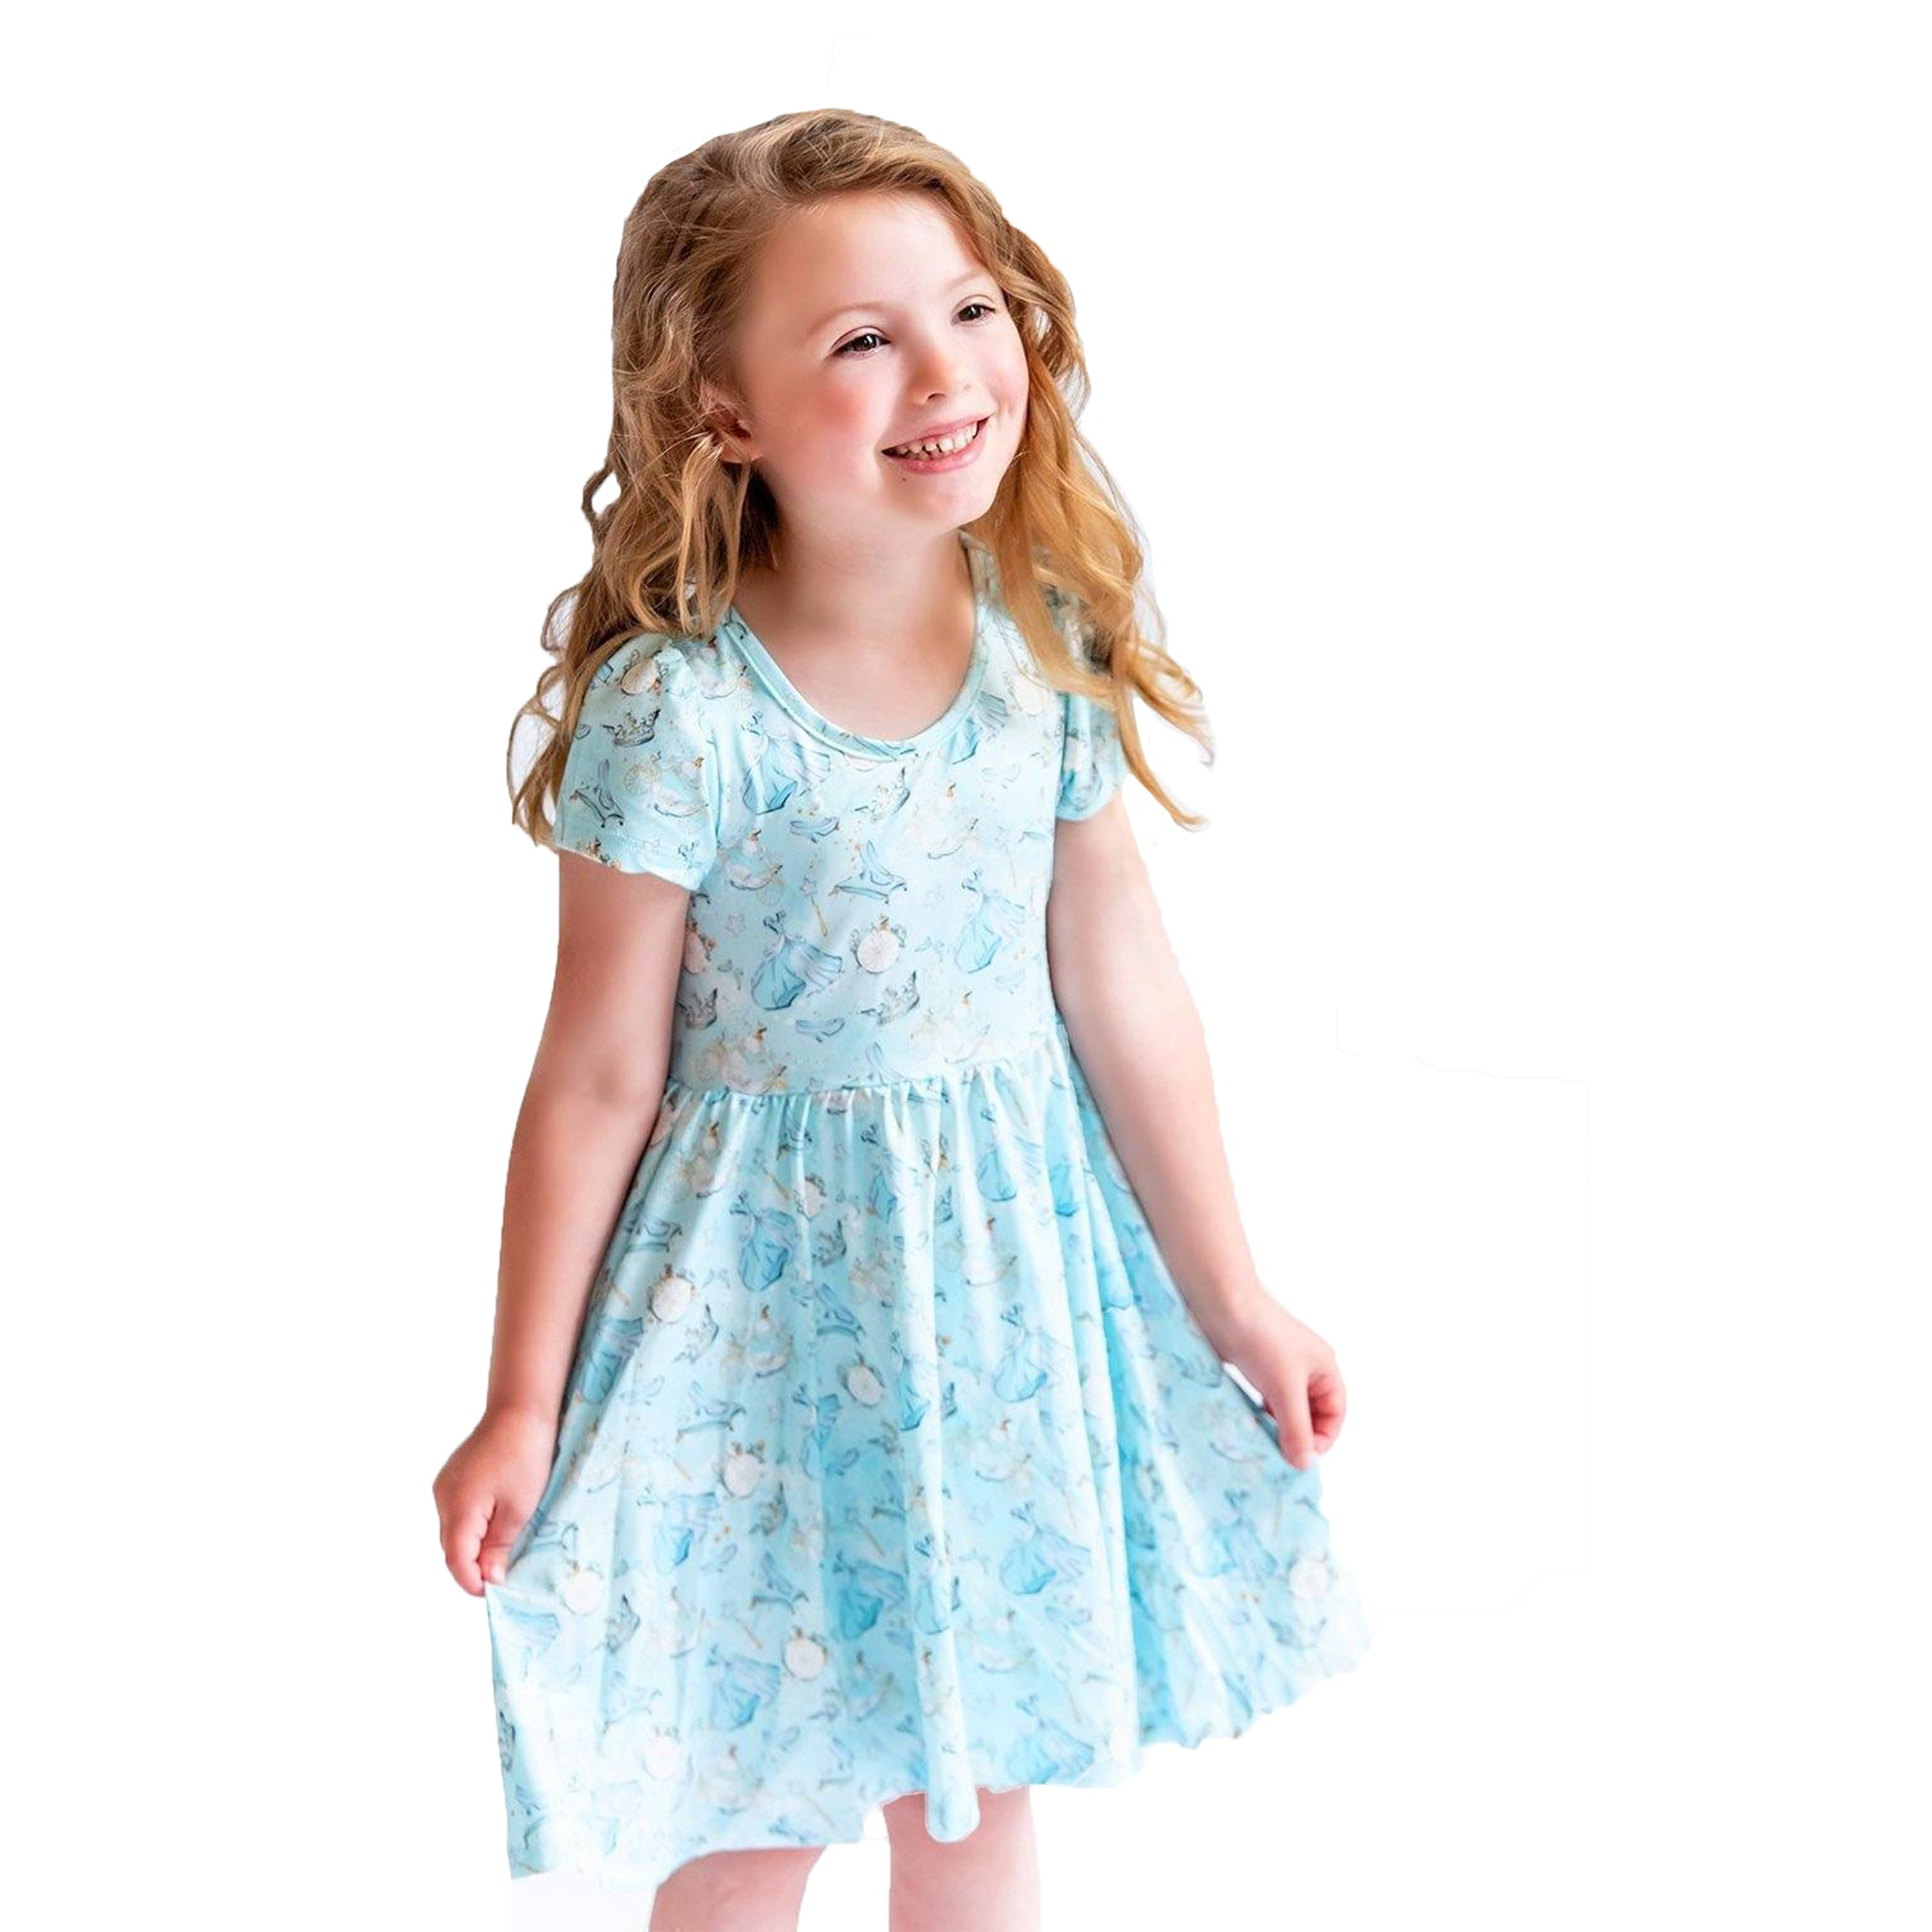 Fairytale Princess Hugs Collection Dress